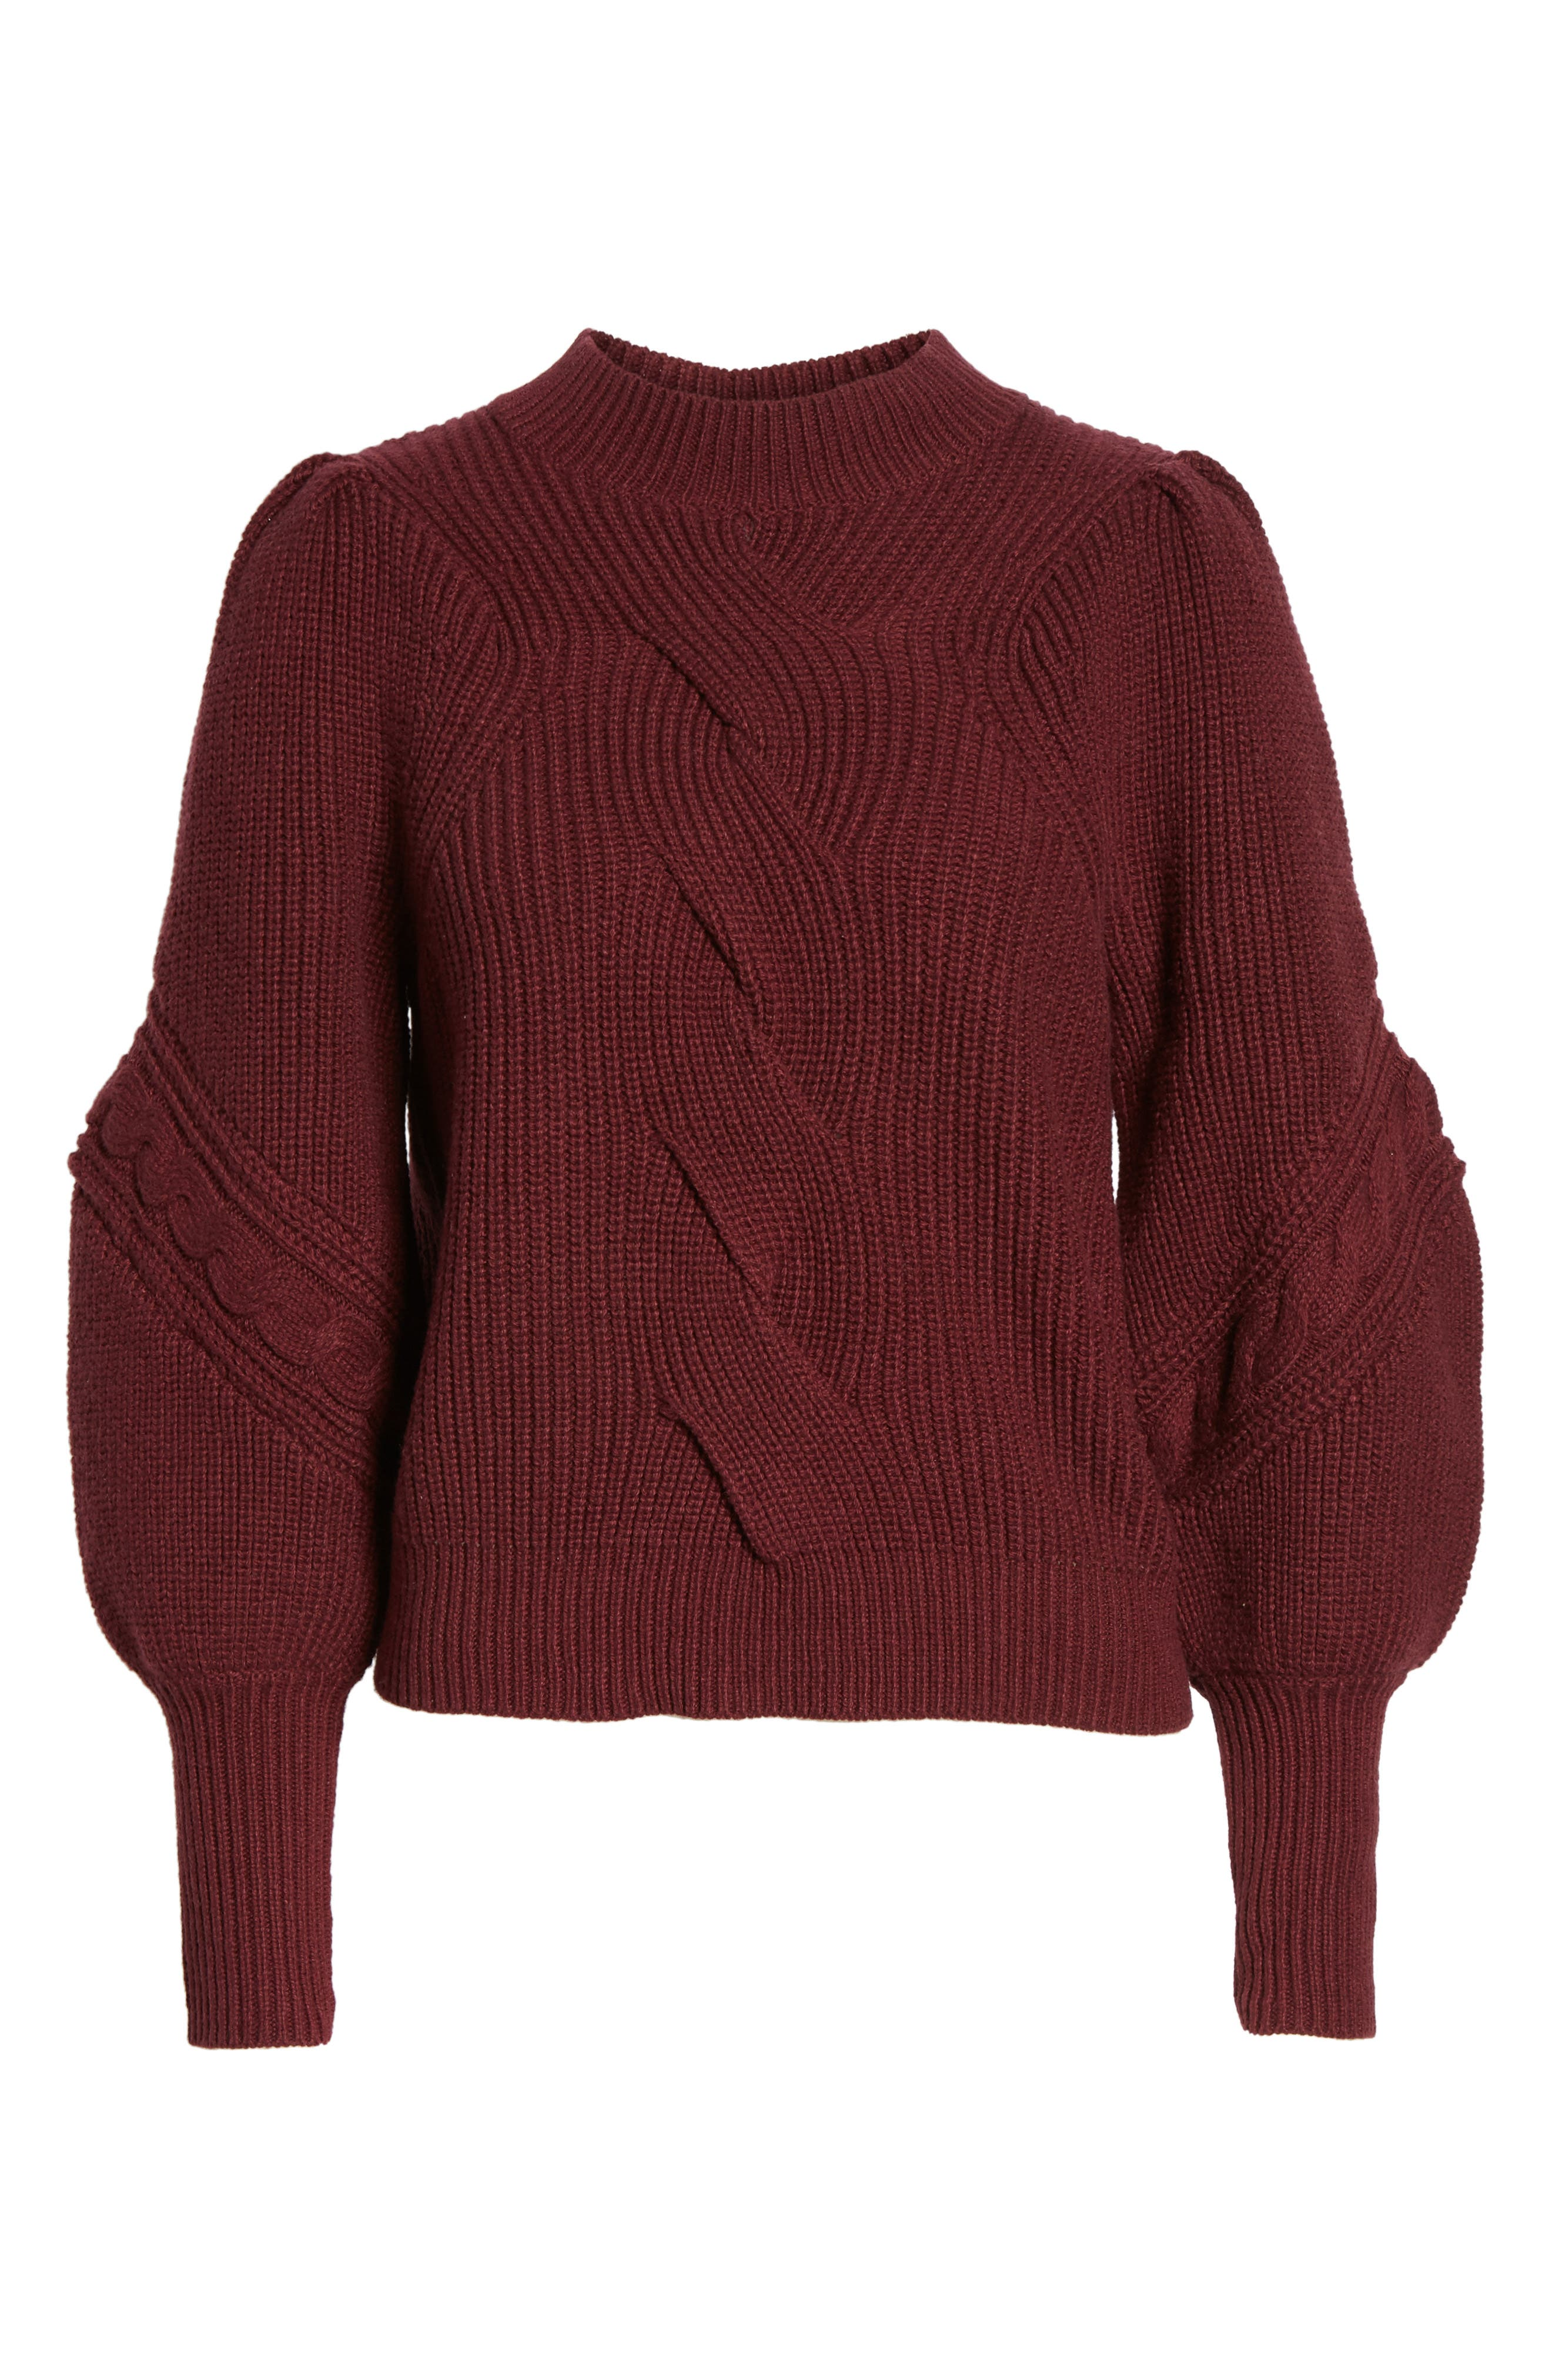 Cable Knit Puff Sleeve Sweater,                             Alternate thumbnail 6, color,                             Burgundy Royale